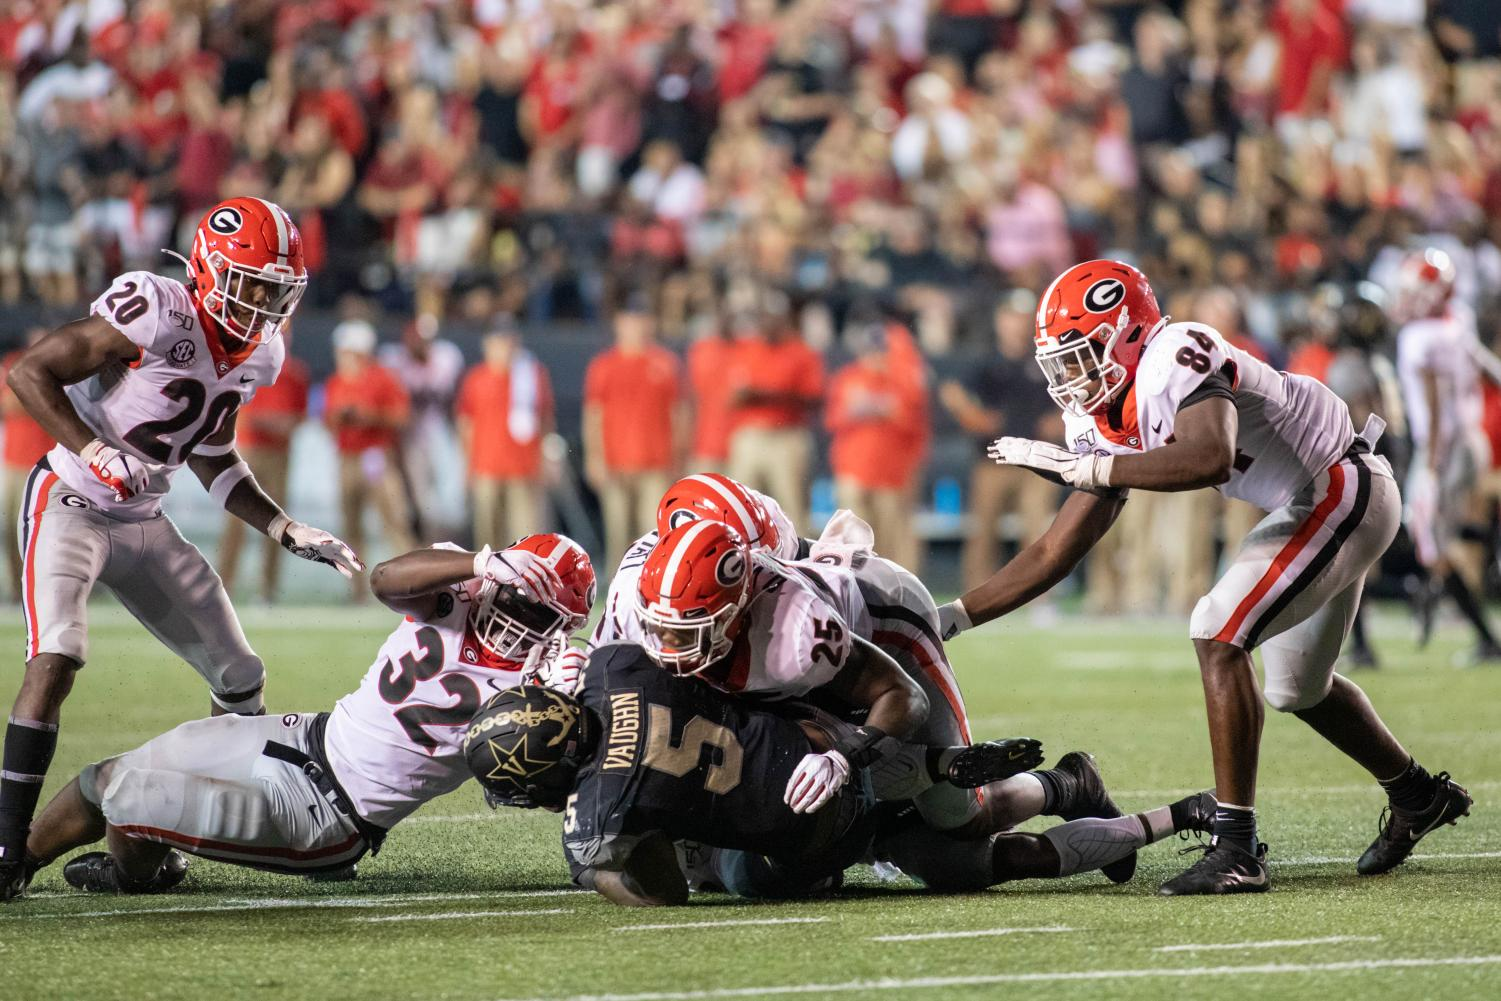 Georgia+defeats+Vanderbilt+30-6+at+the+season+opener+on+Saturday%2C+Aug.+31.+%28Photo+by+Emily+Gon%C3%A7alves%29